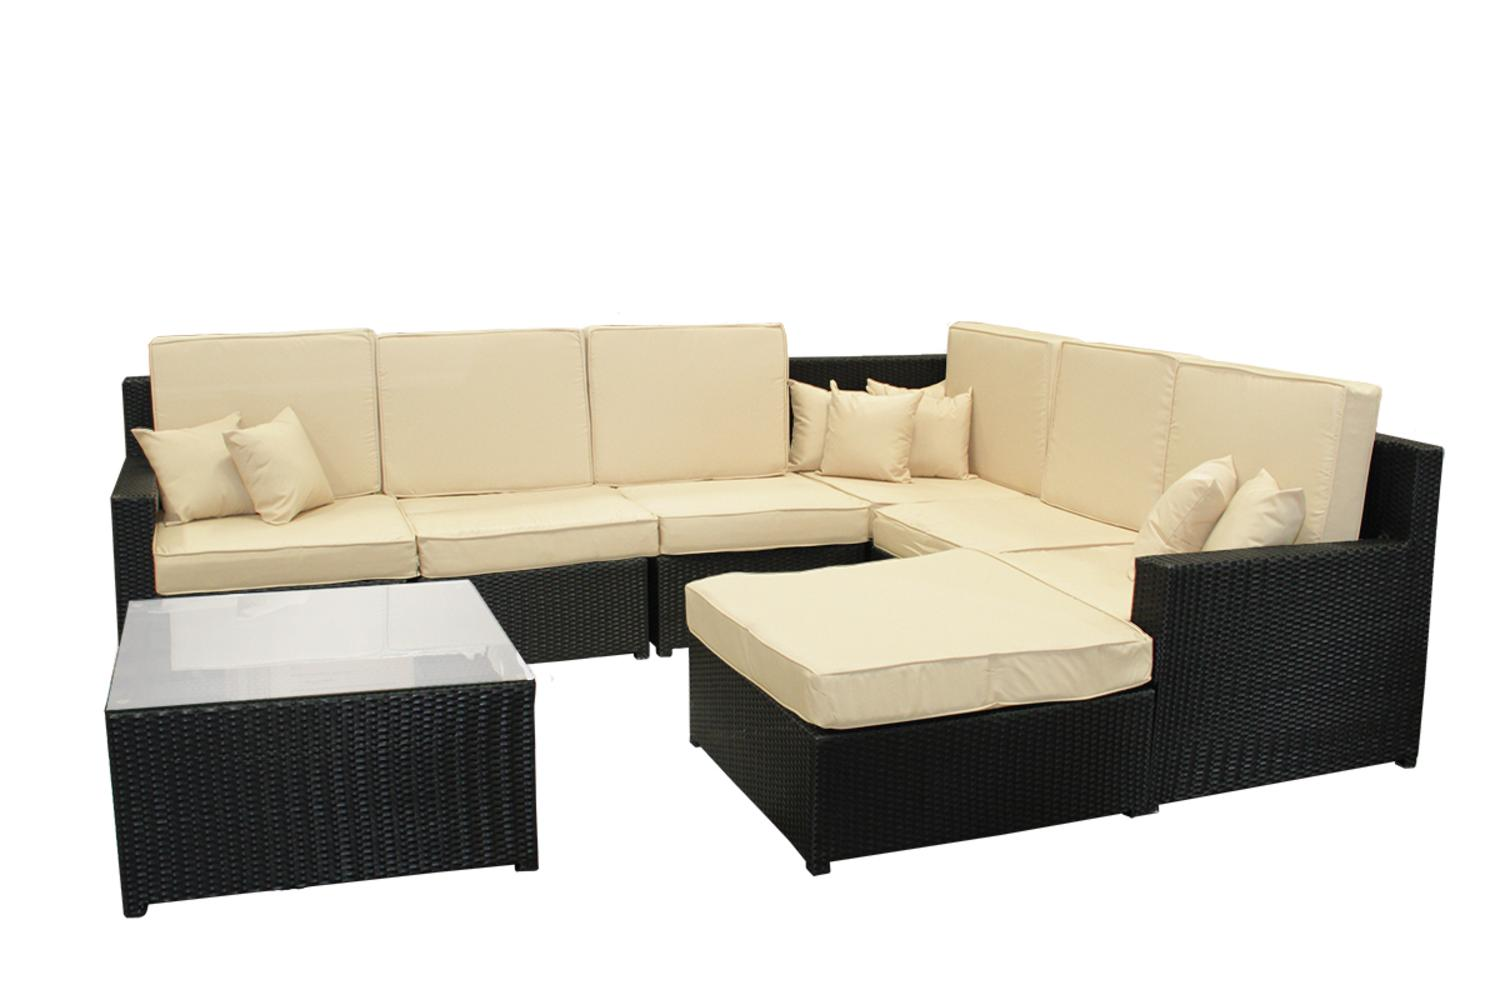 8-Piece Black Resin Wicker Outdoor Furniture Sectional Sofa Table and Ottoman Set - Beige  sc 1 st  Walmart : 8 piece sectional sofa - Sectionals, Sofas & Couches